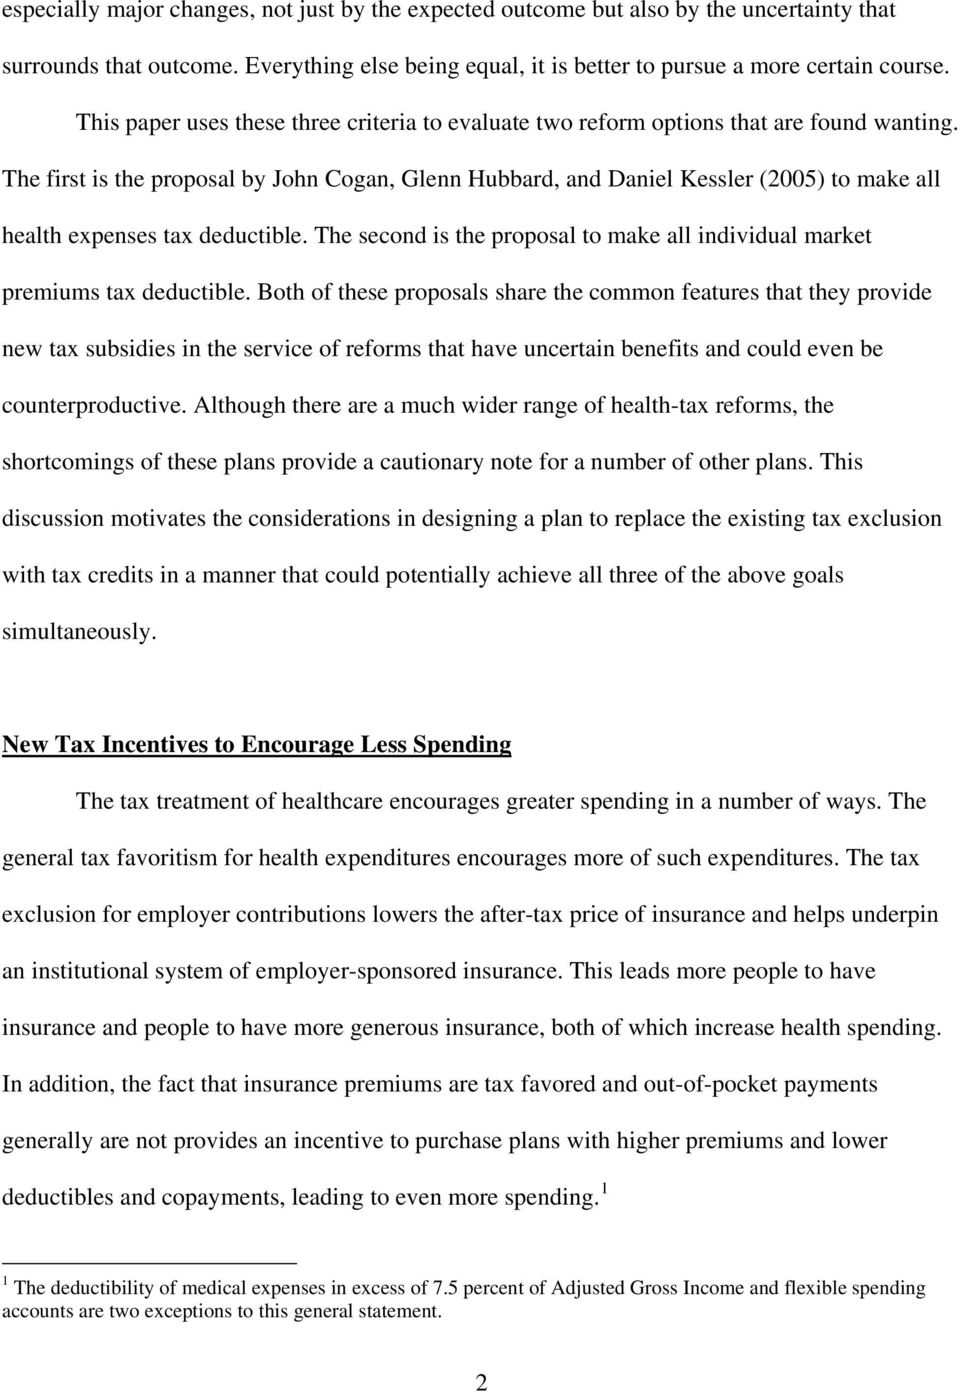 The first is the proposal by John Cogan, Glenn Hubbard, and Daniel Kessler (2005) to make all health expenses tax deductible.